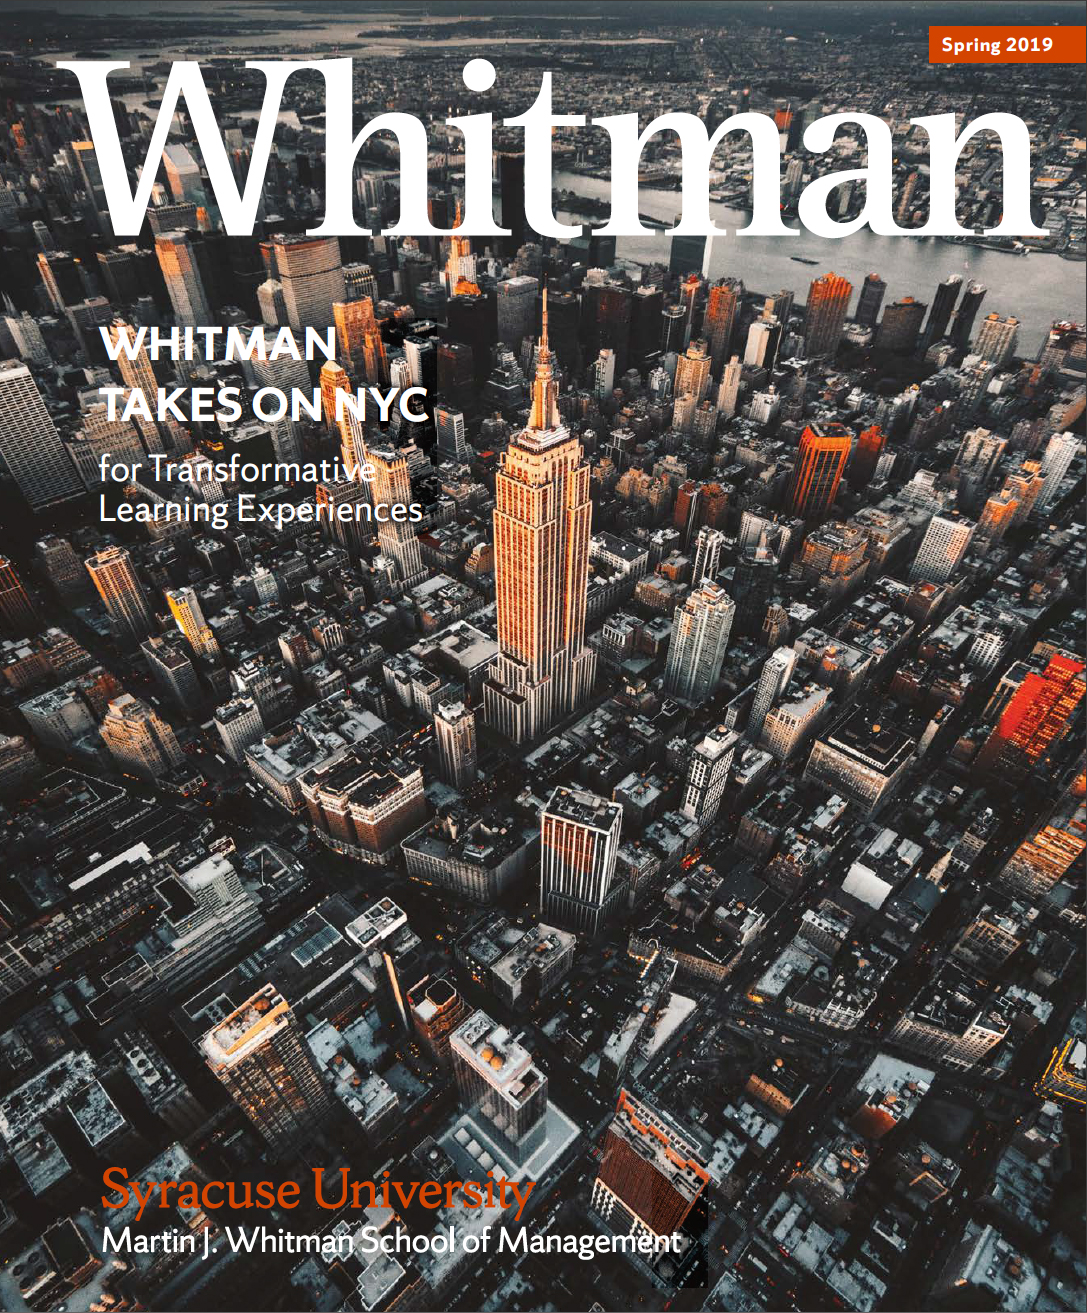 Spring 2019 Whitman Magazine Cover